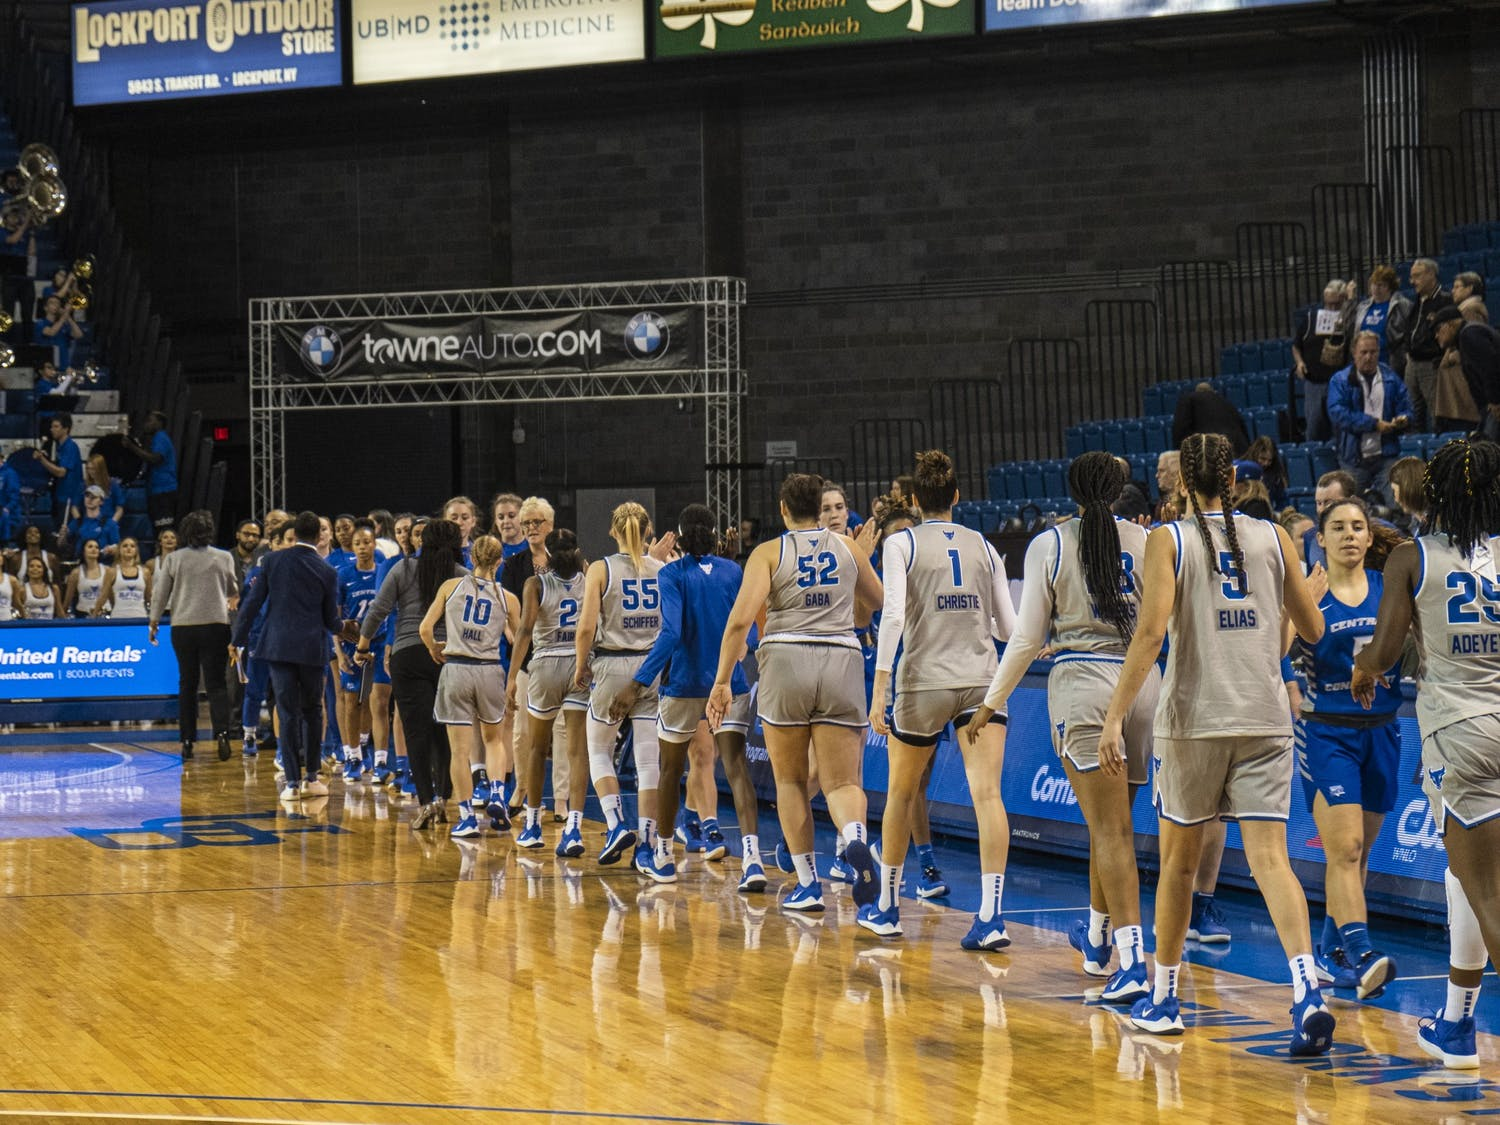 The women's basketball team congratulates an opponent at the end of a game.